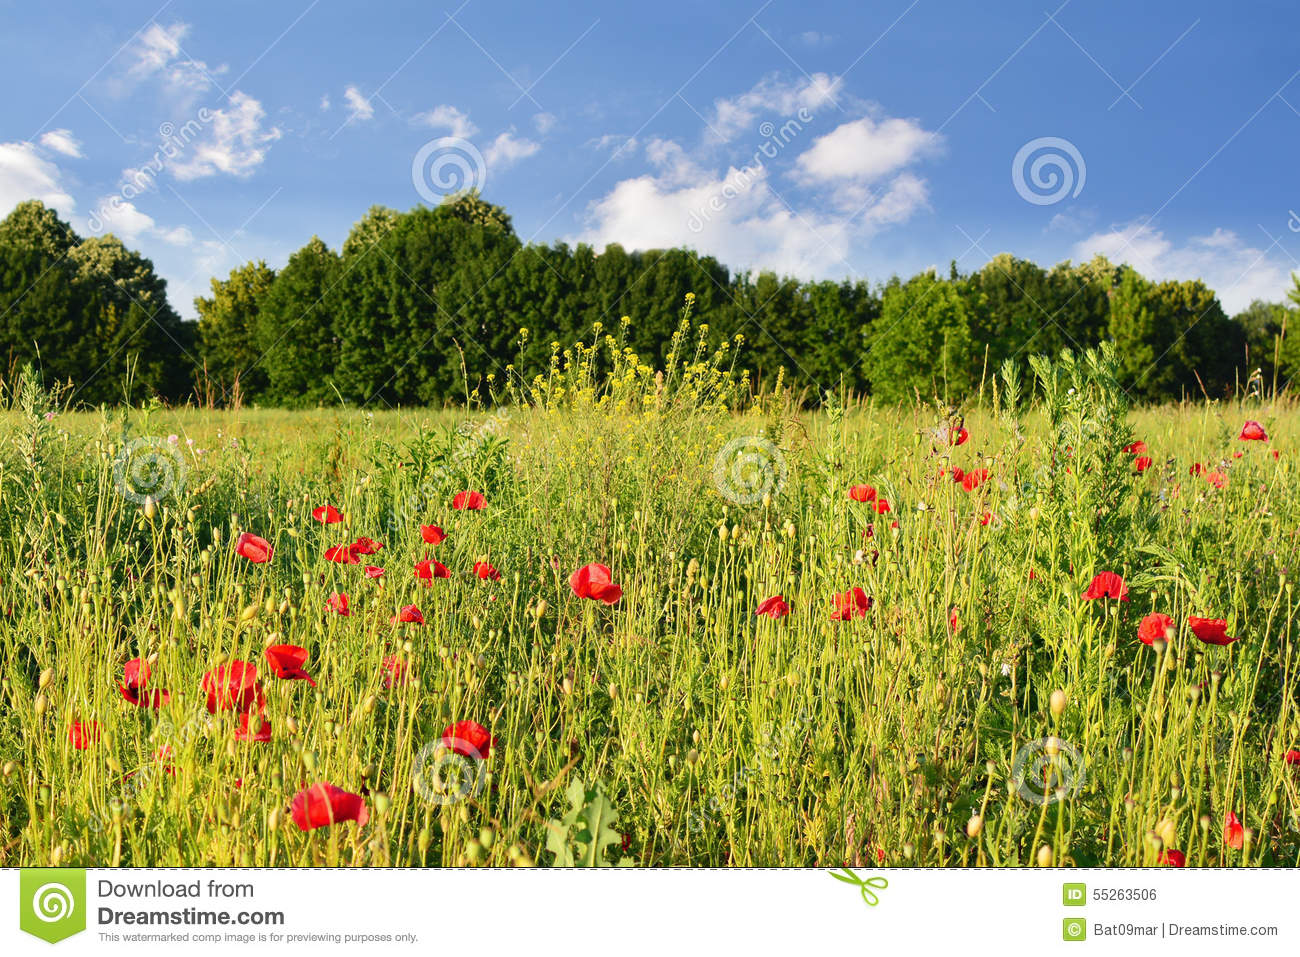 bright red flowers field - photo #1